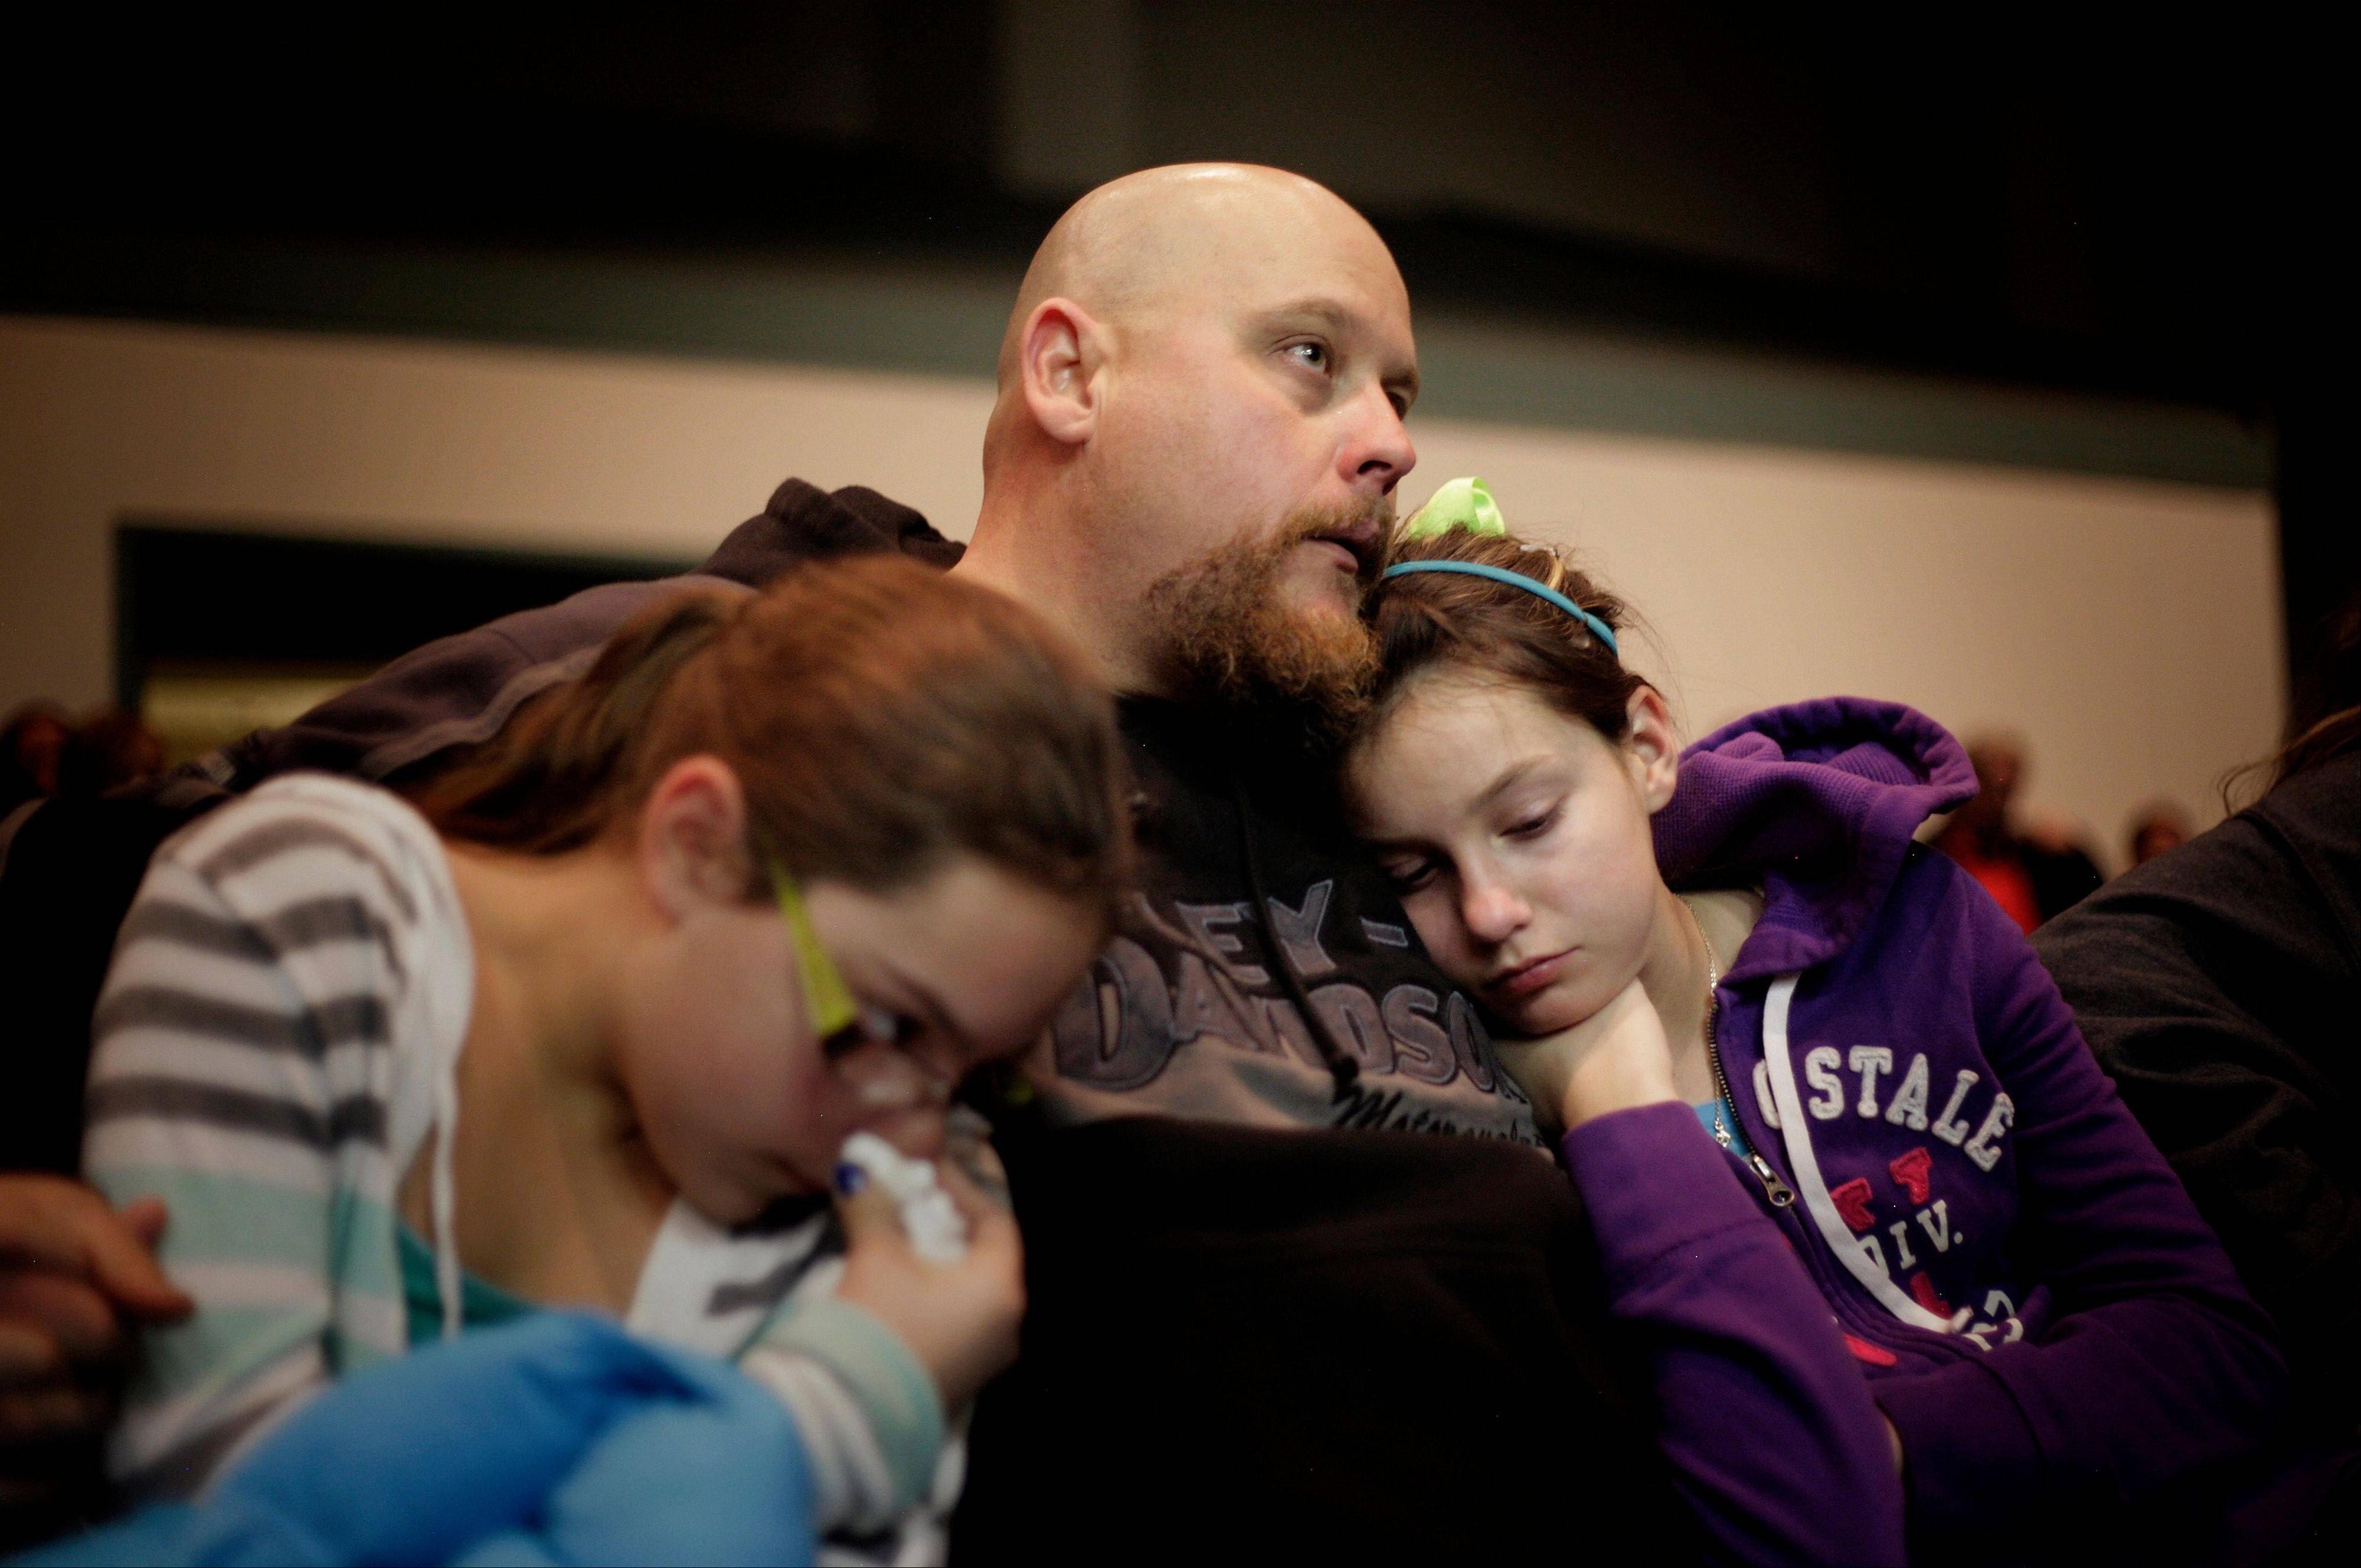 Troy Tucker, center of Roswell, N.M., holds his daughters Emily Tucker, left age 10, and Hannah Tucker, right age 12, during a community prayer vigil for the victims of the Berrendo Middle School shooting in Roswell, N.M., Tuesday Jan. 14, 2014.